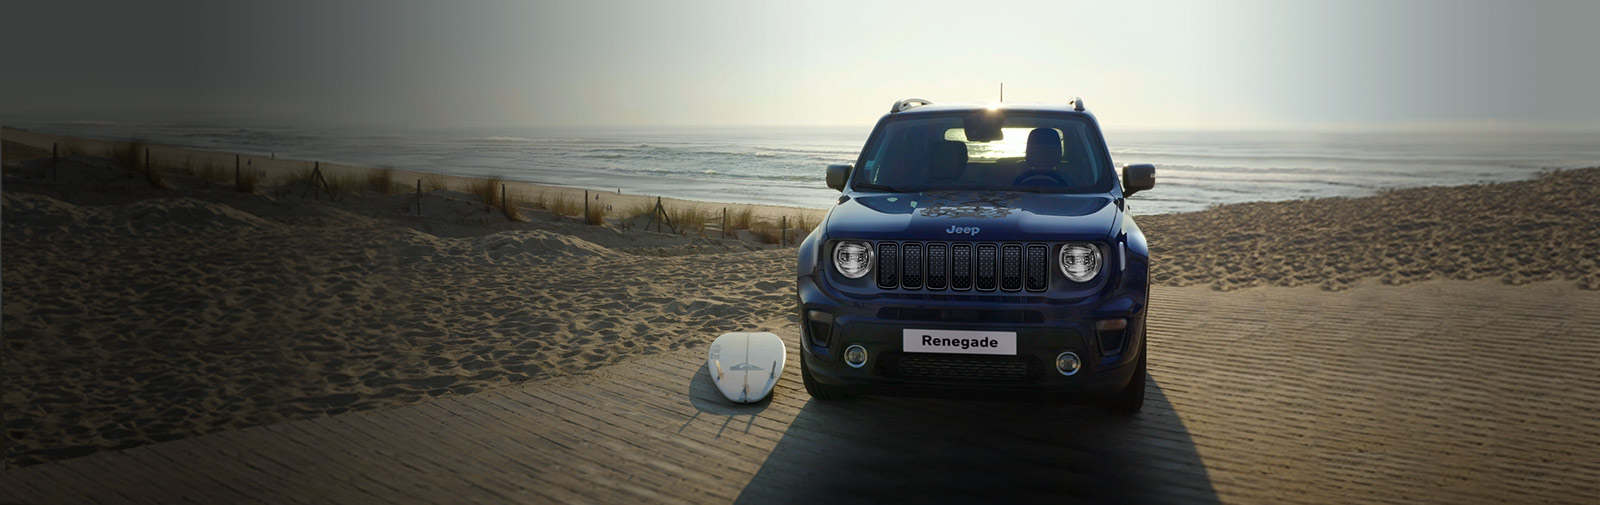 Offre%20SUV%20Jeep%20Renegade%20Quiksilver